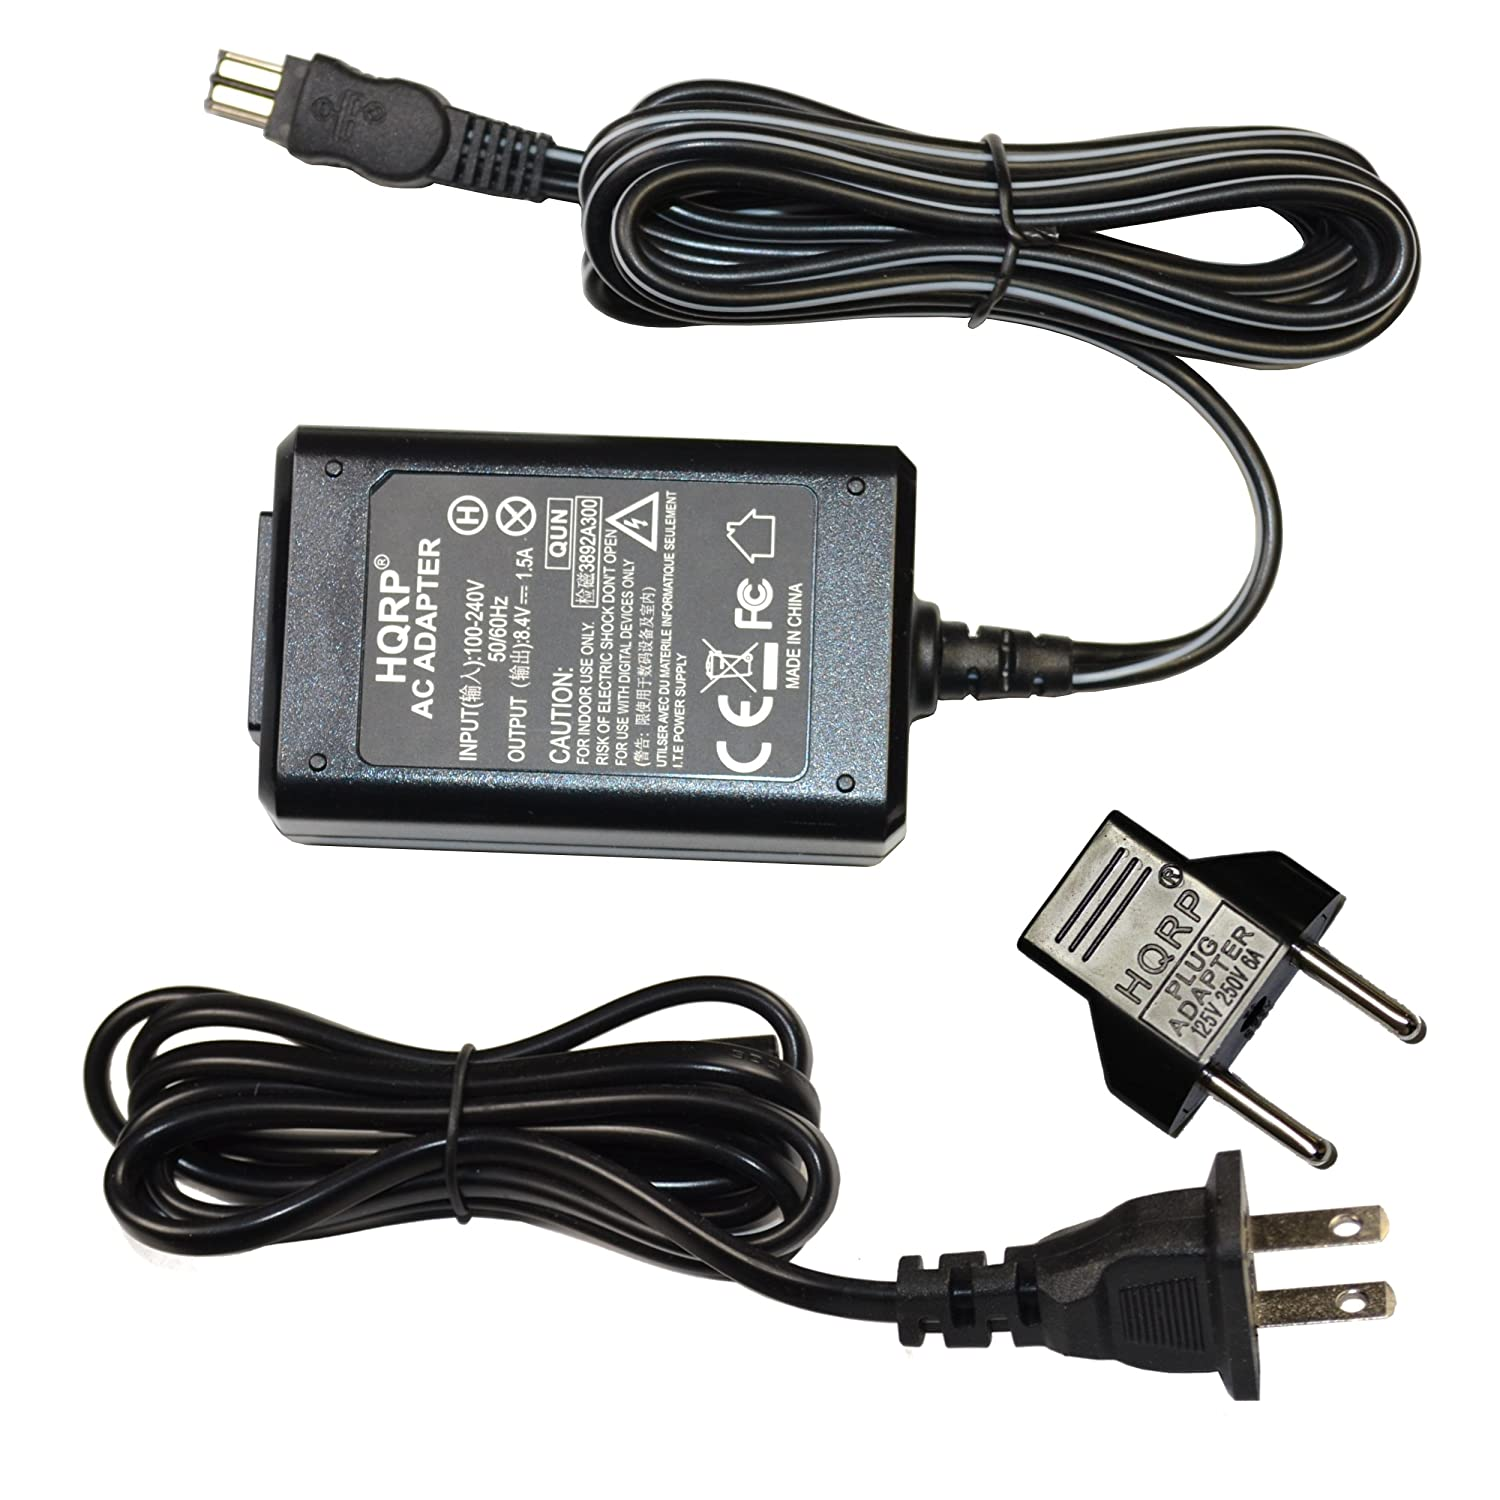 SONY DCR-TRV240 DRIVER FOR MAC